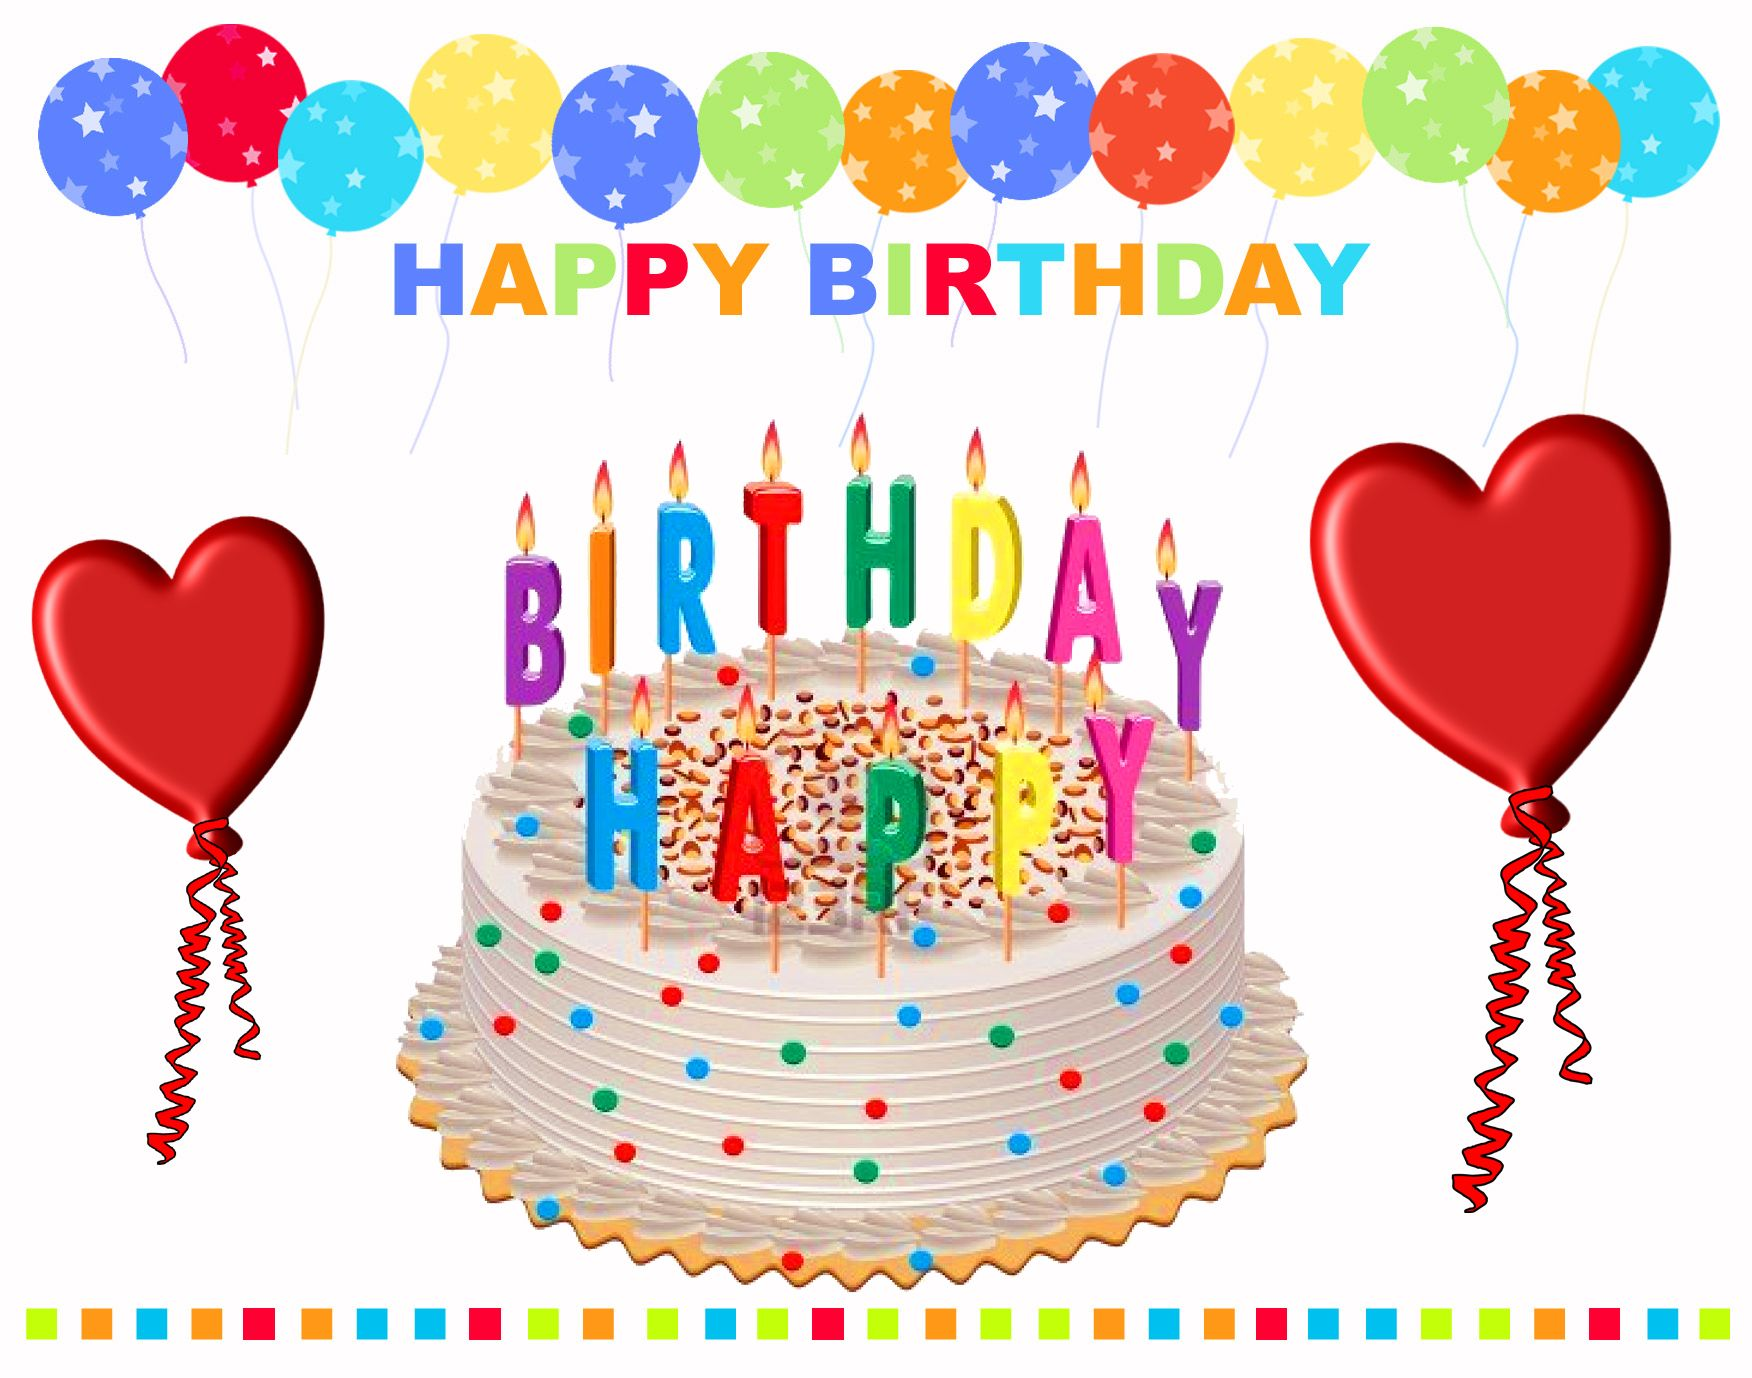 Happy birthday images hd google search birthday greetings happy birthday images hd google search birthday images hdhappy birthday to us1 year oldsbirthday greetingsbirthdaysbirthday kristyandbryce Choice Image